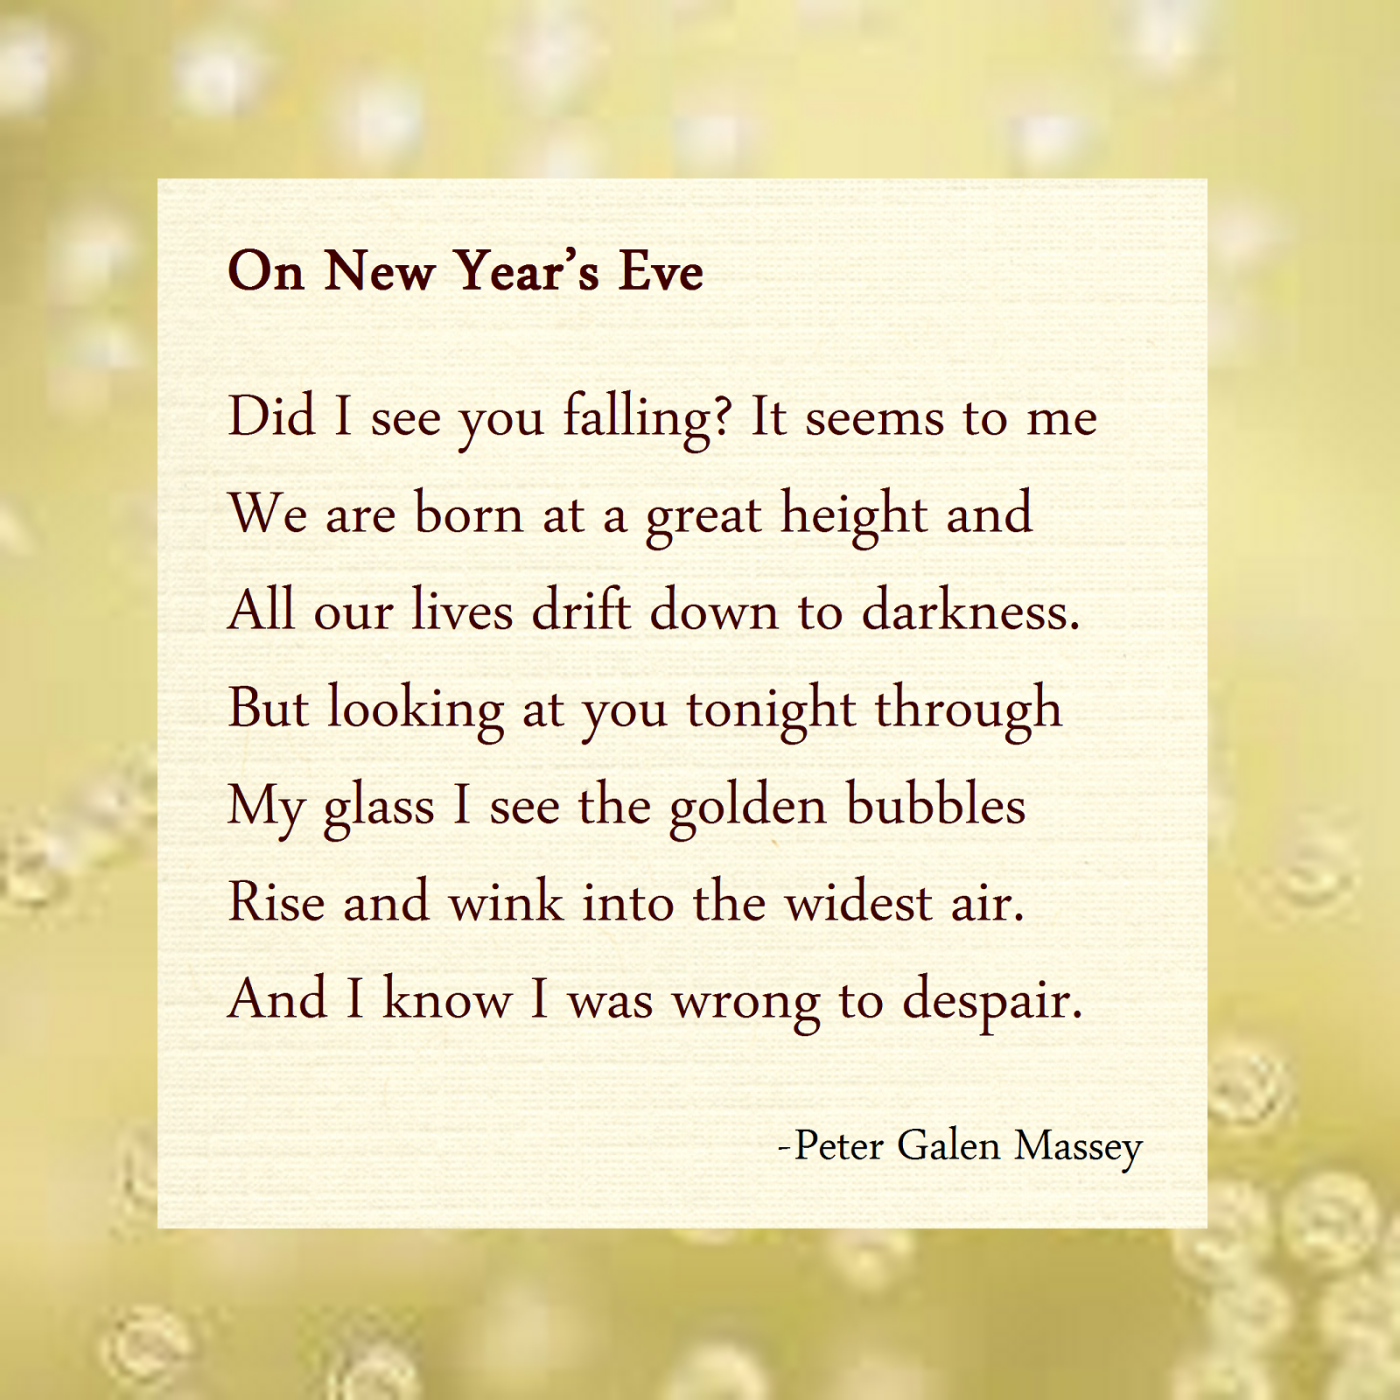 On New Year\'s Eve"